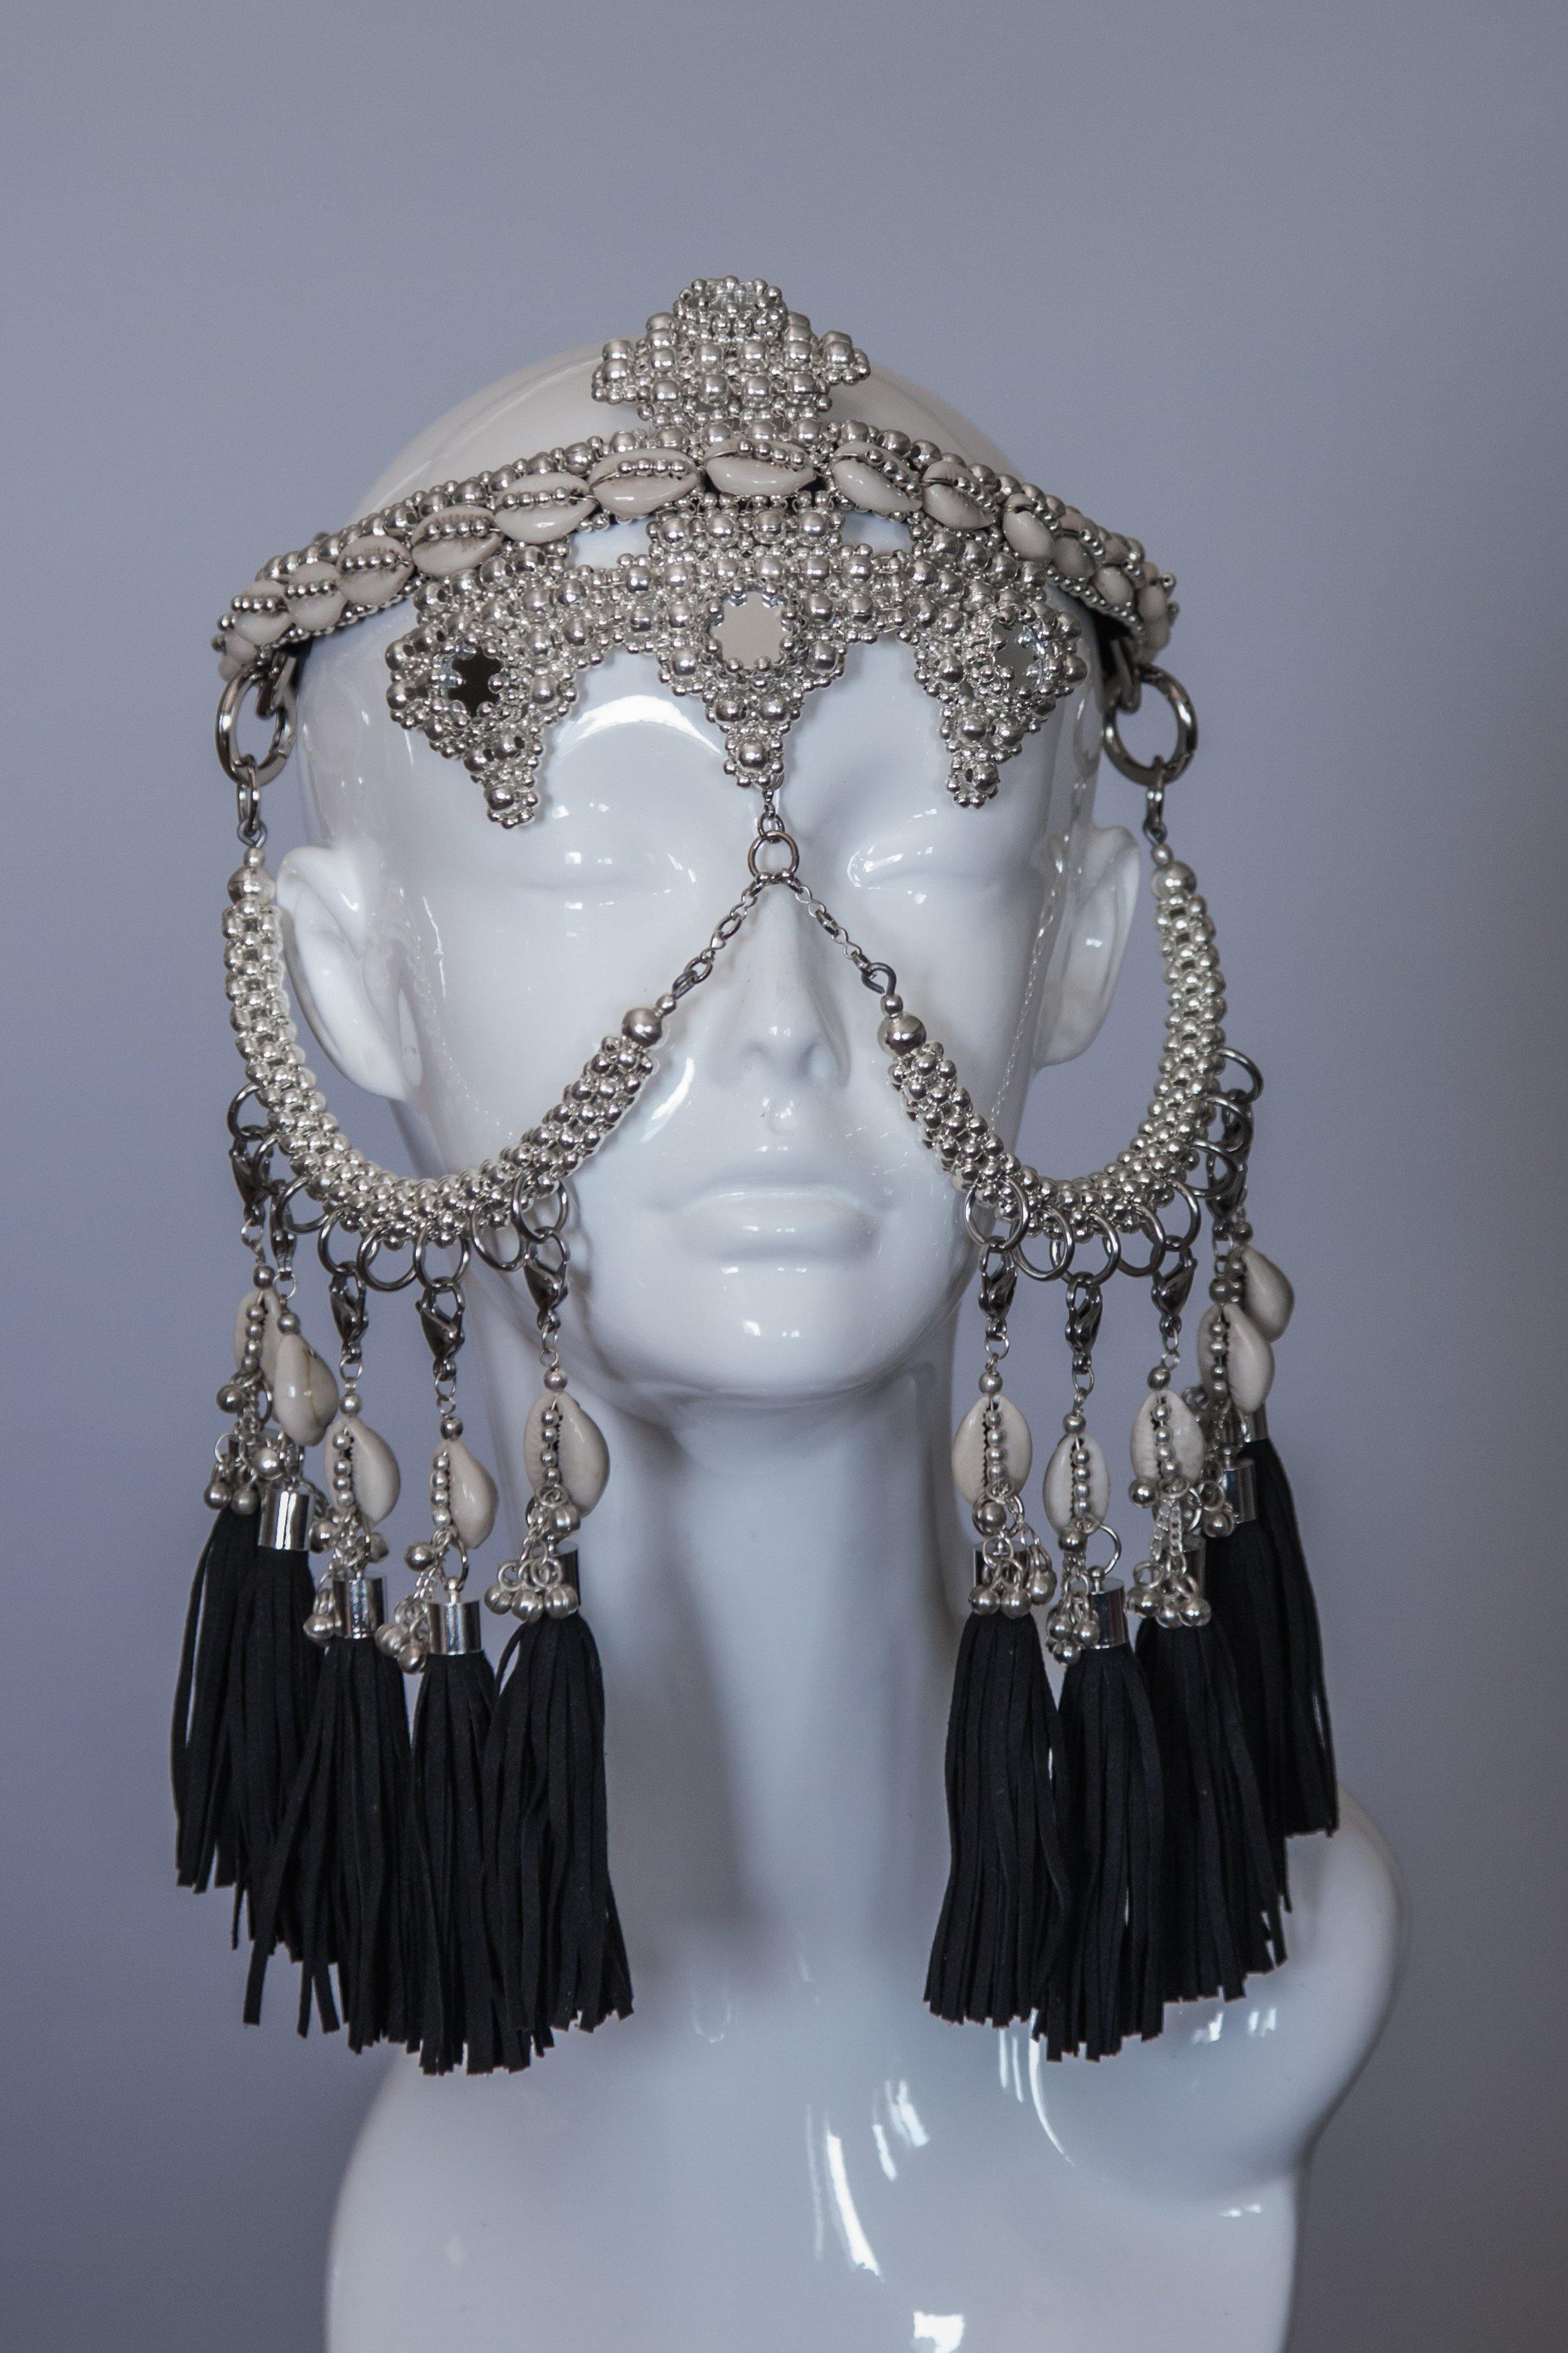 Elohim Modular Headpiece System with Black Tassels